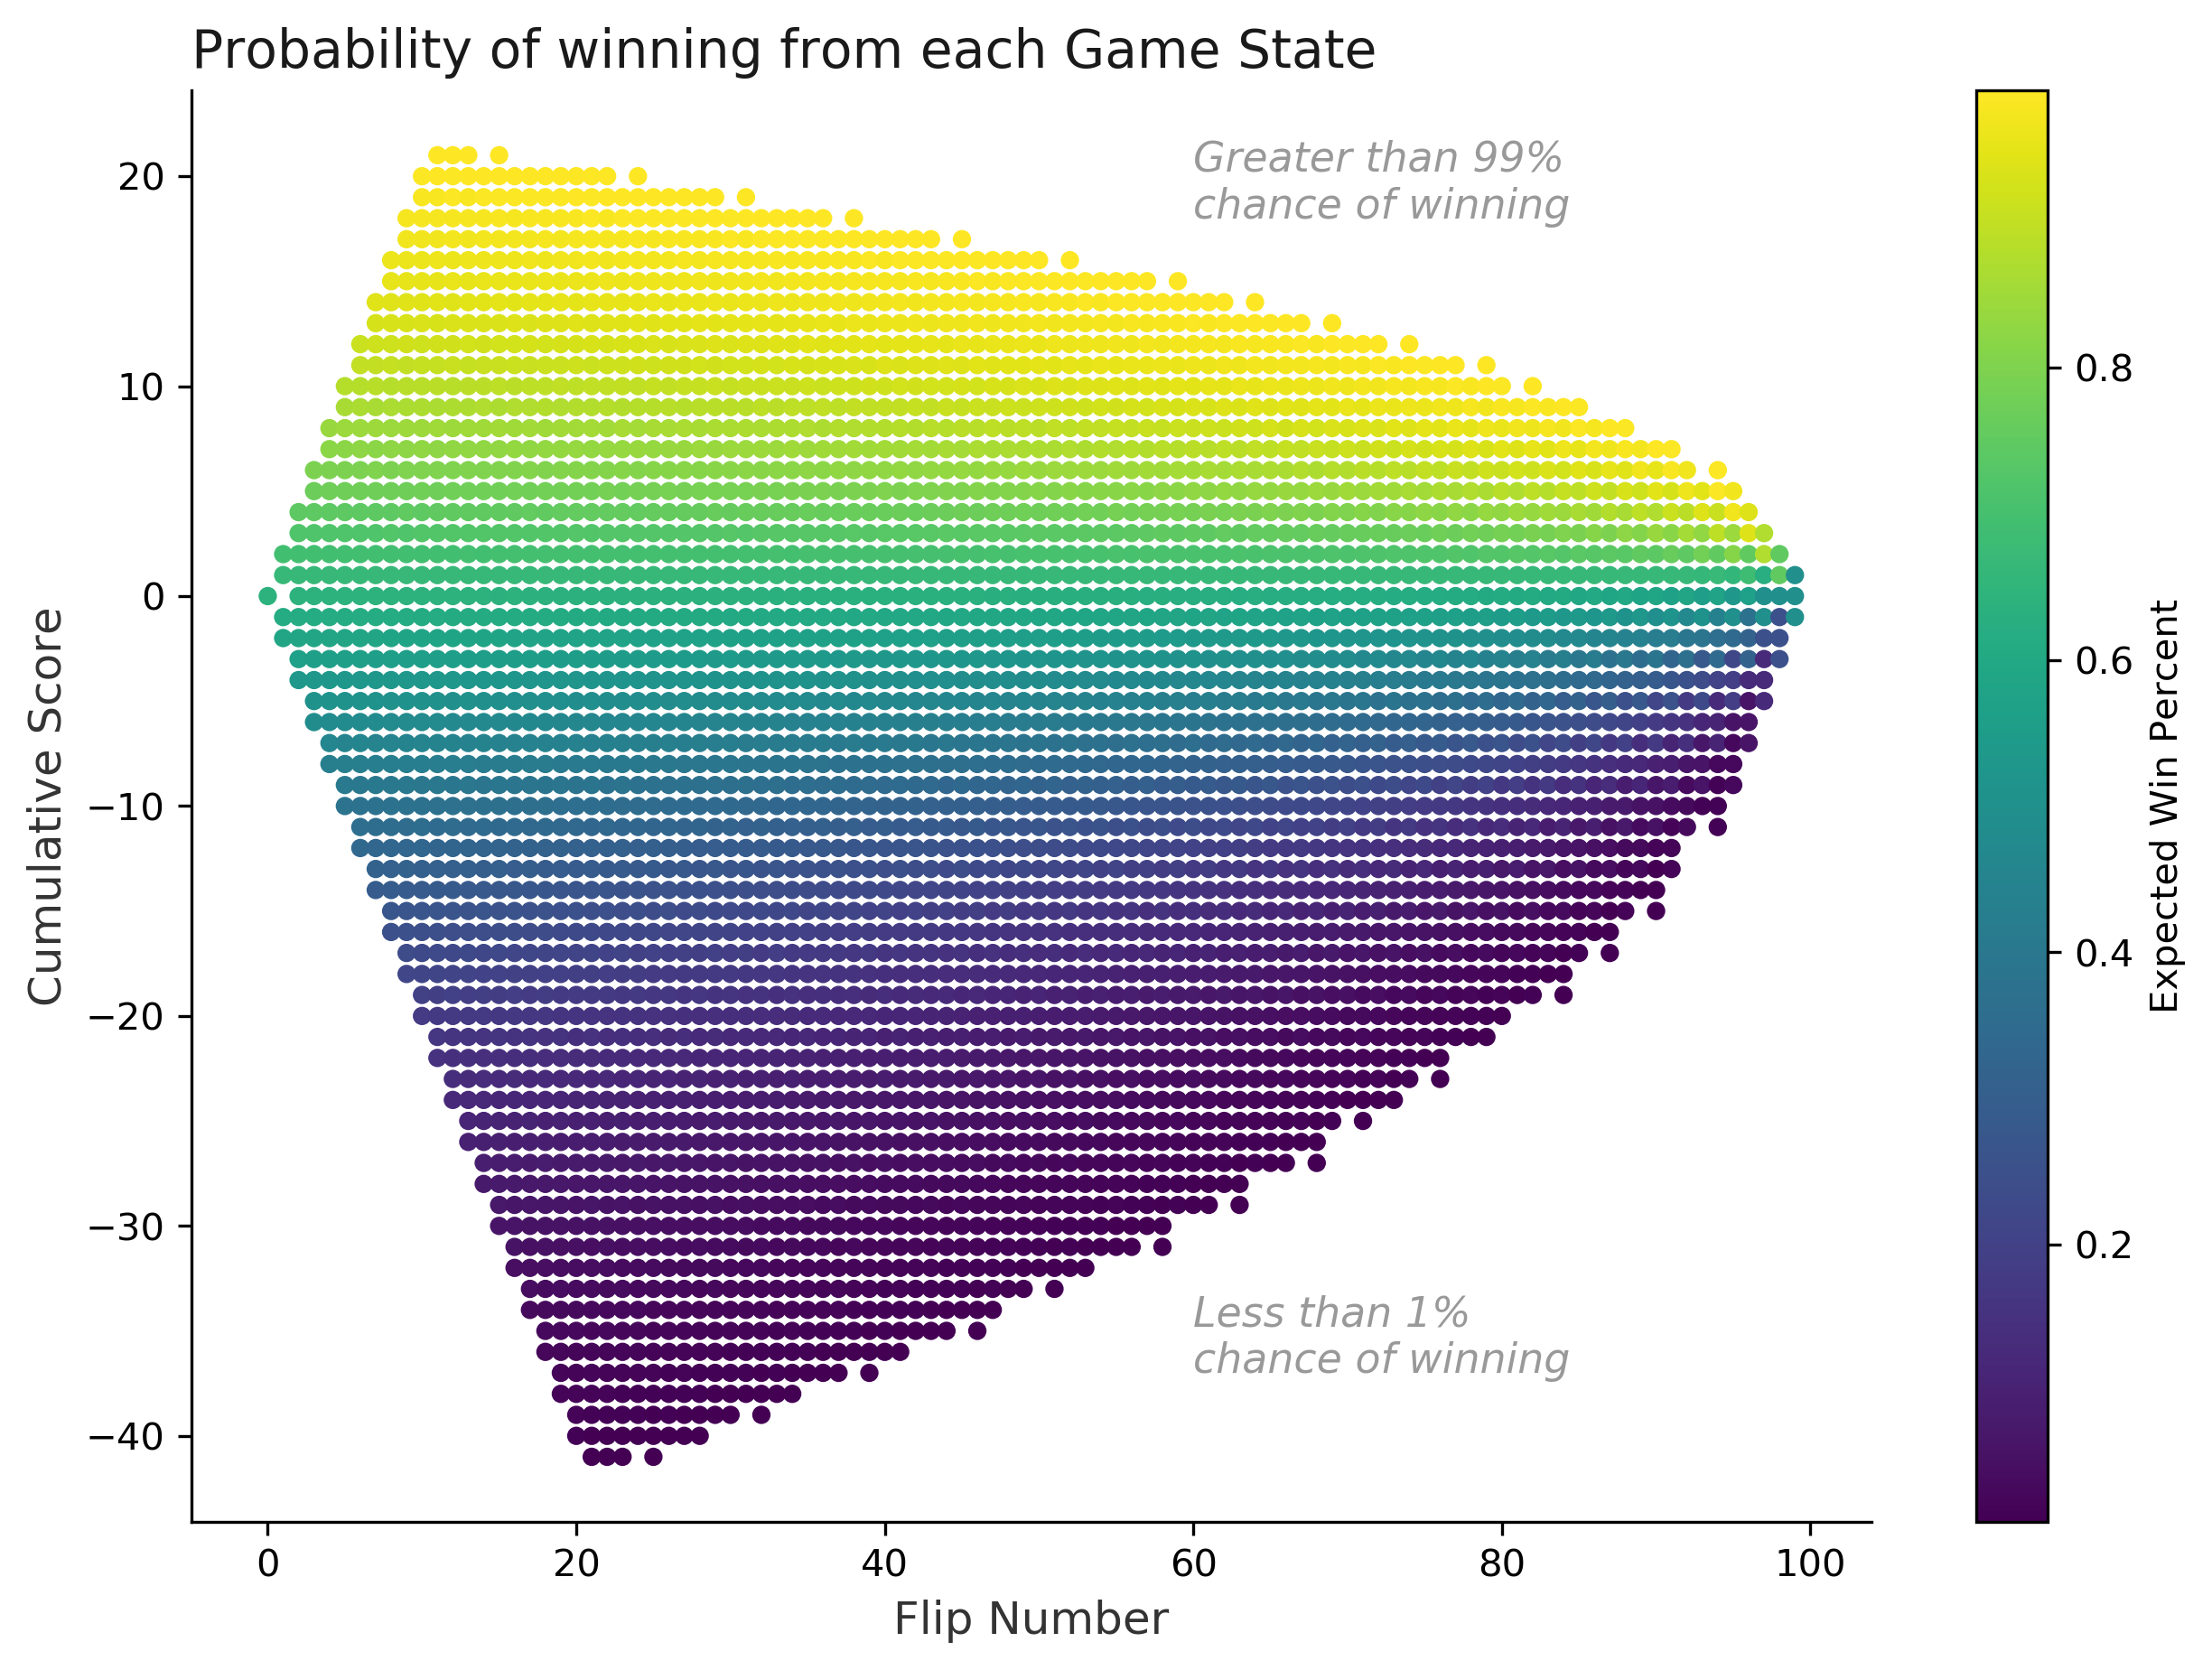 Probability of winning from each game state